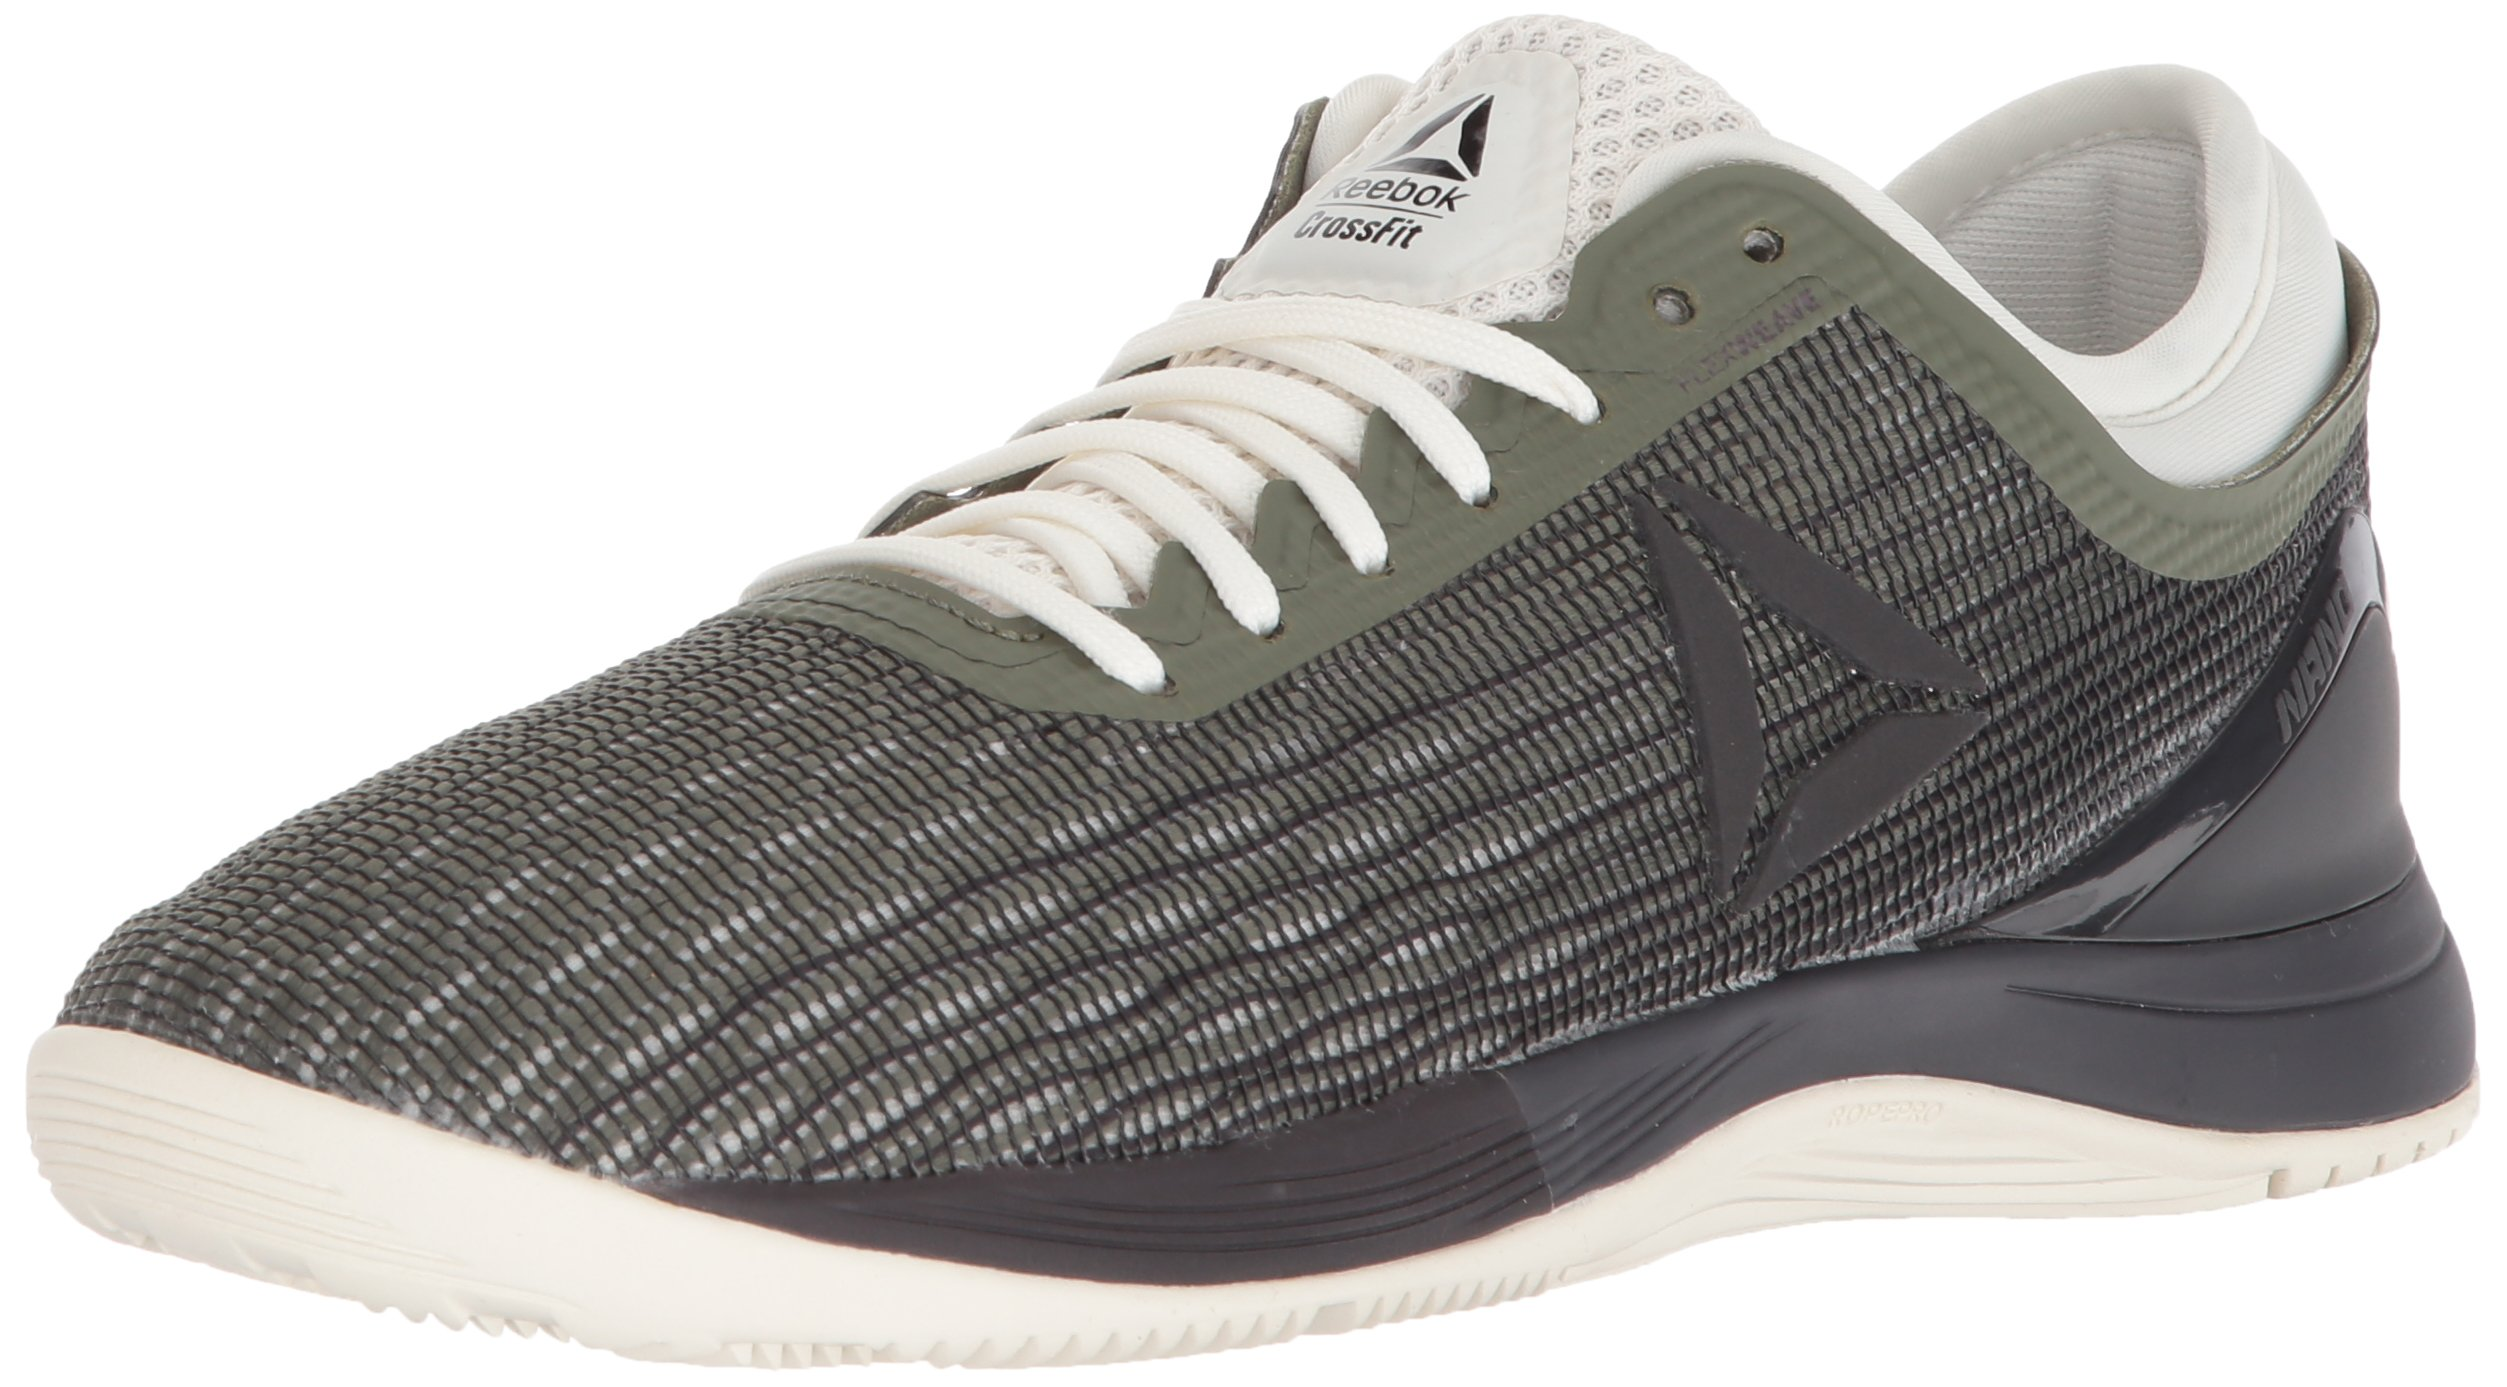 Reebok Women's CrossFit Nano 8.0 Sneaker, Hunter Green/Coal/Chalk, 5 M US by Reebok (Image #1)